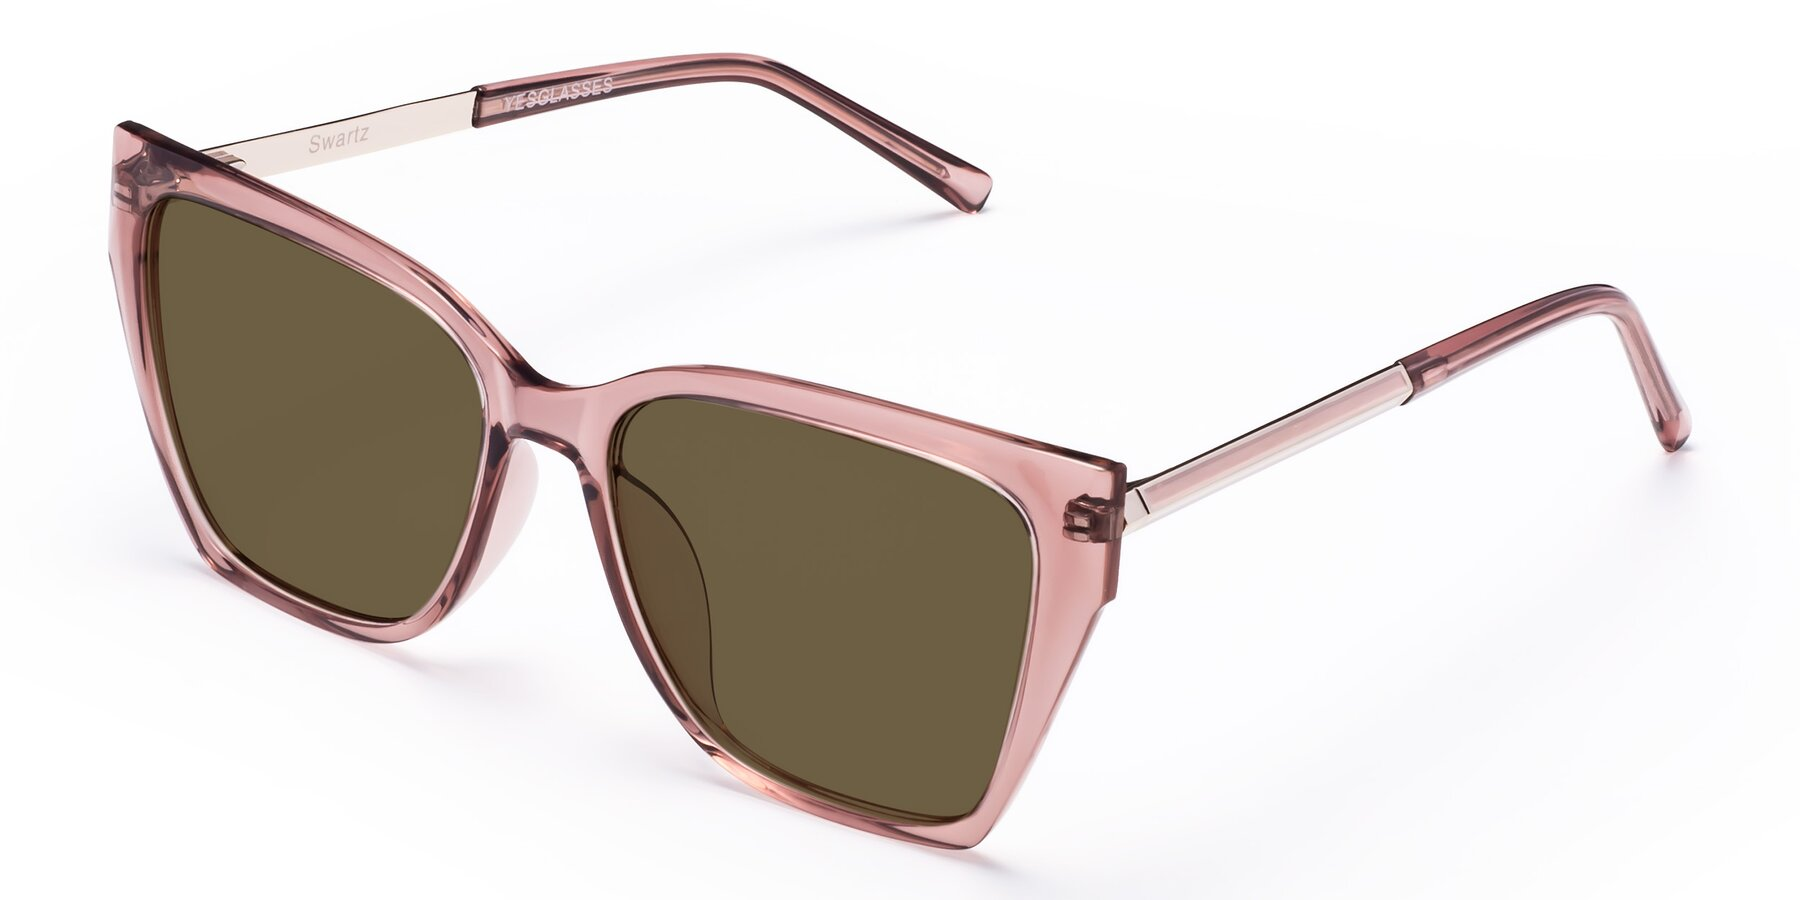 Angle of Swartz in Grape with Brown Polarized Lenses